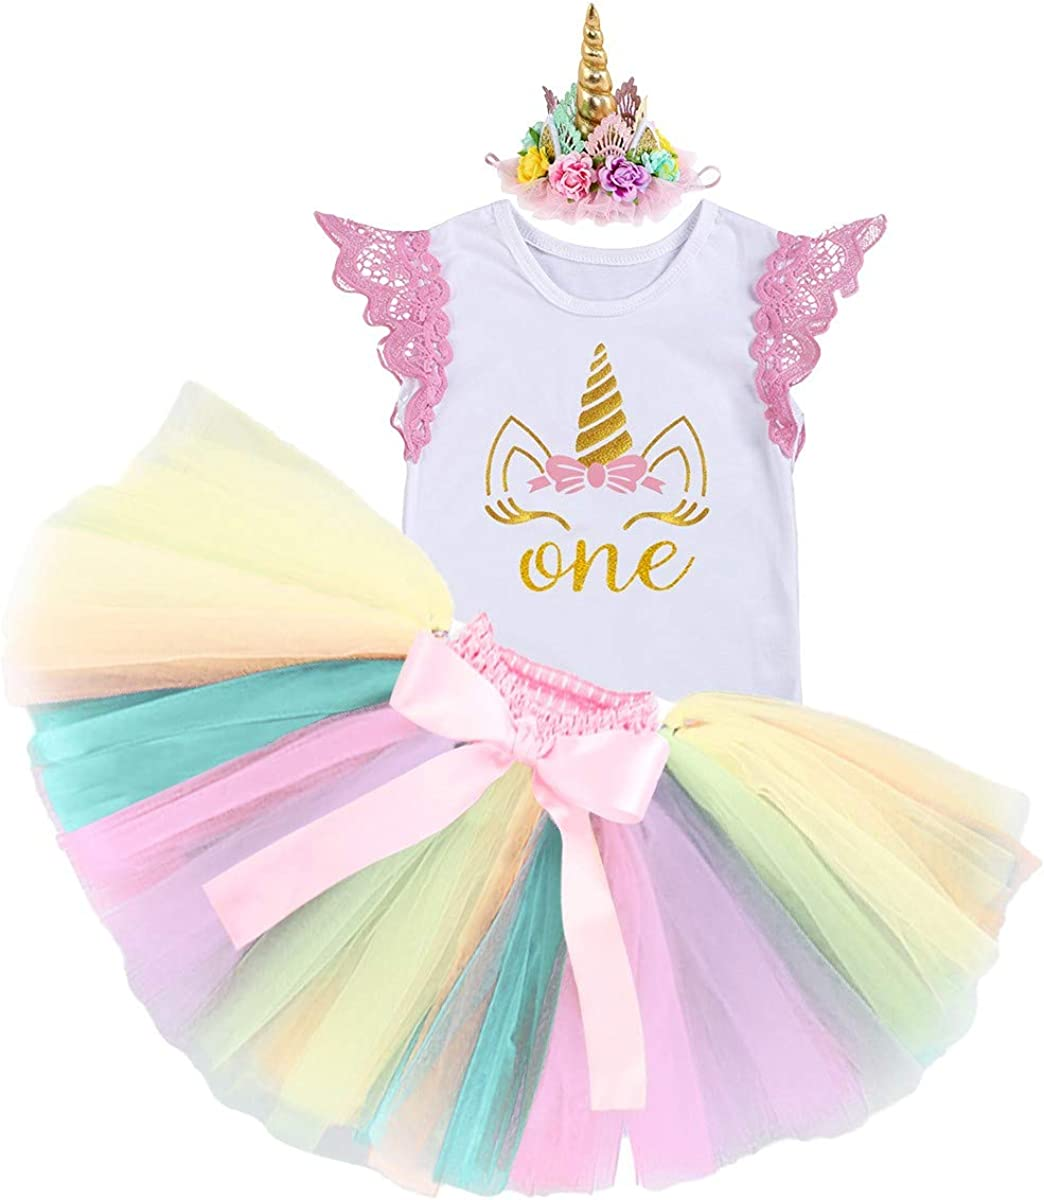 Shoes HIHCBF Baby Girls Princess First Birthday Cake Smash Unicorn Outfits Romper Rainbow Tutu Skirt Unicorn Headband